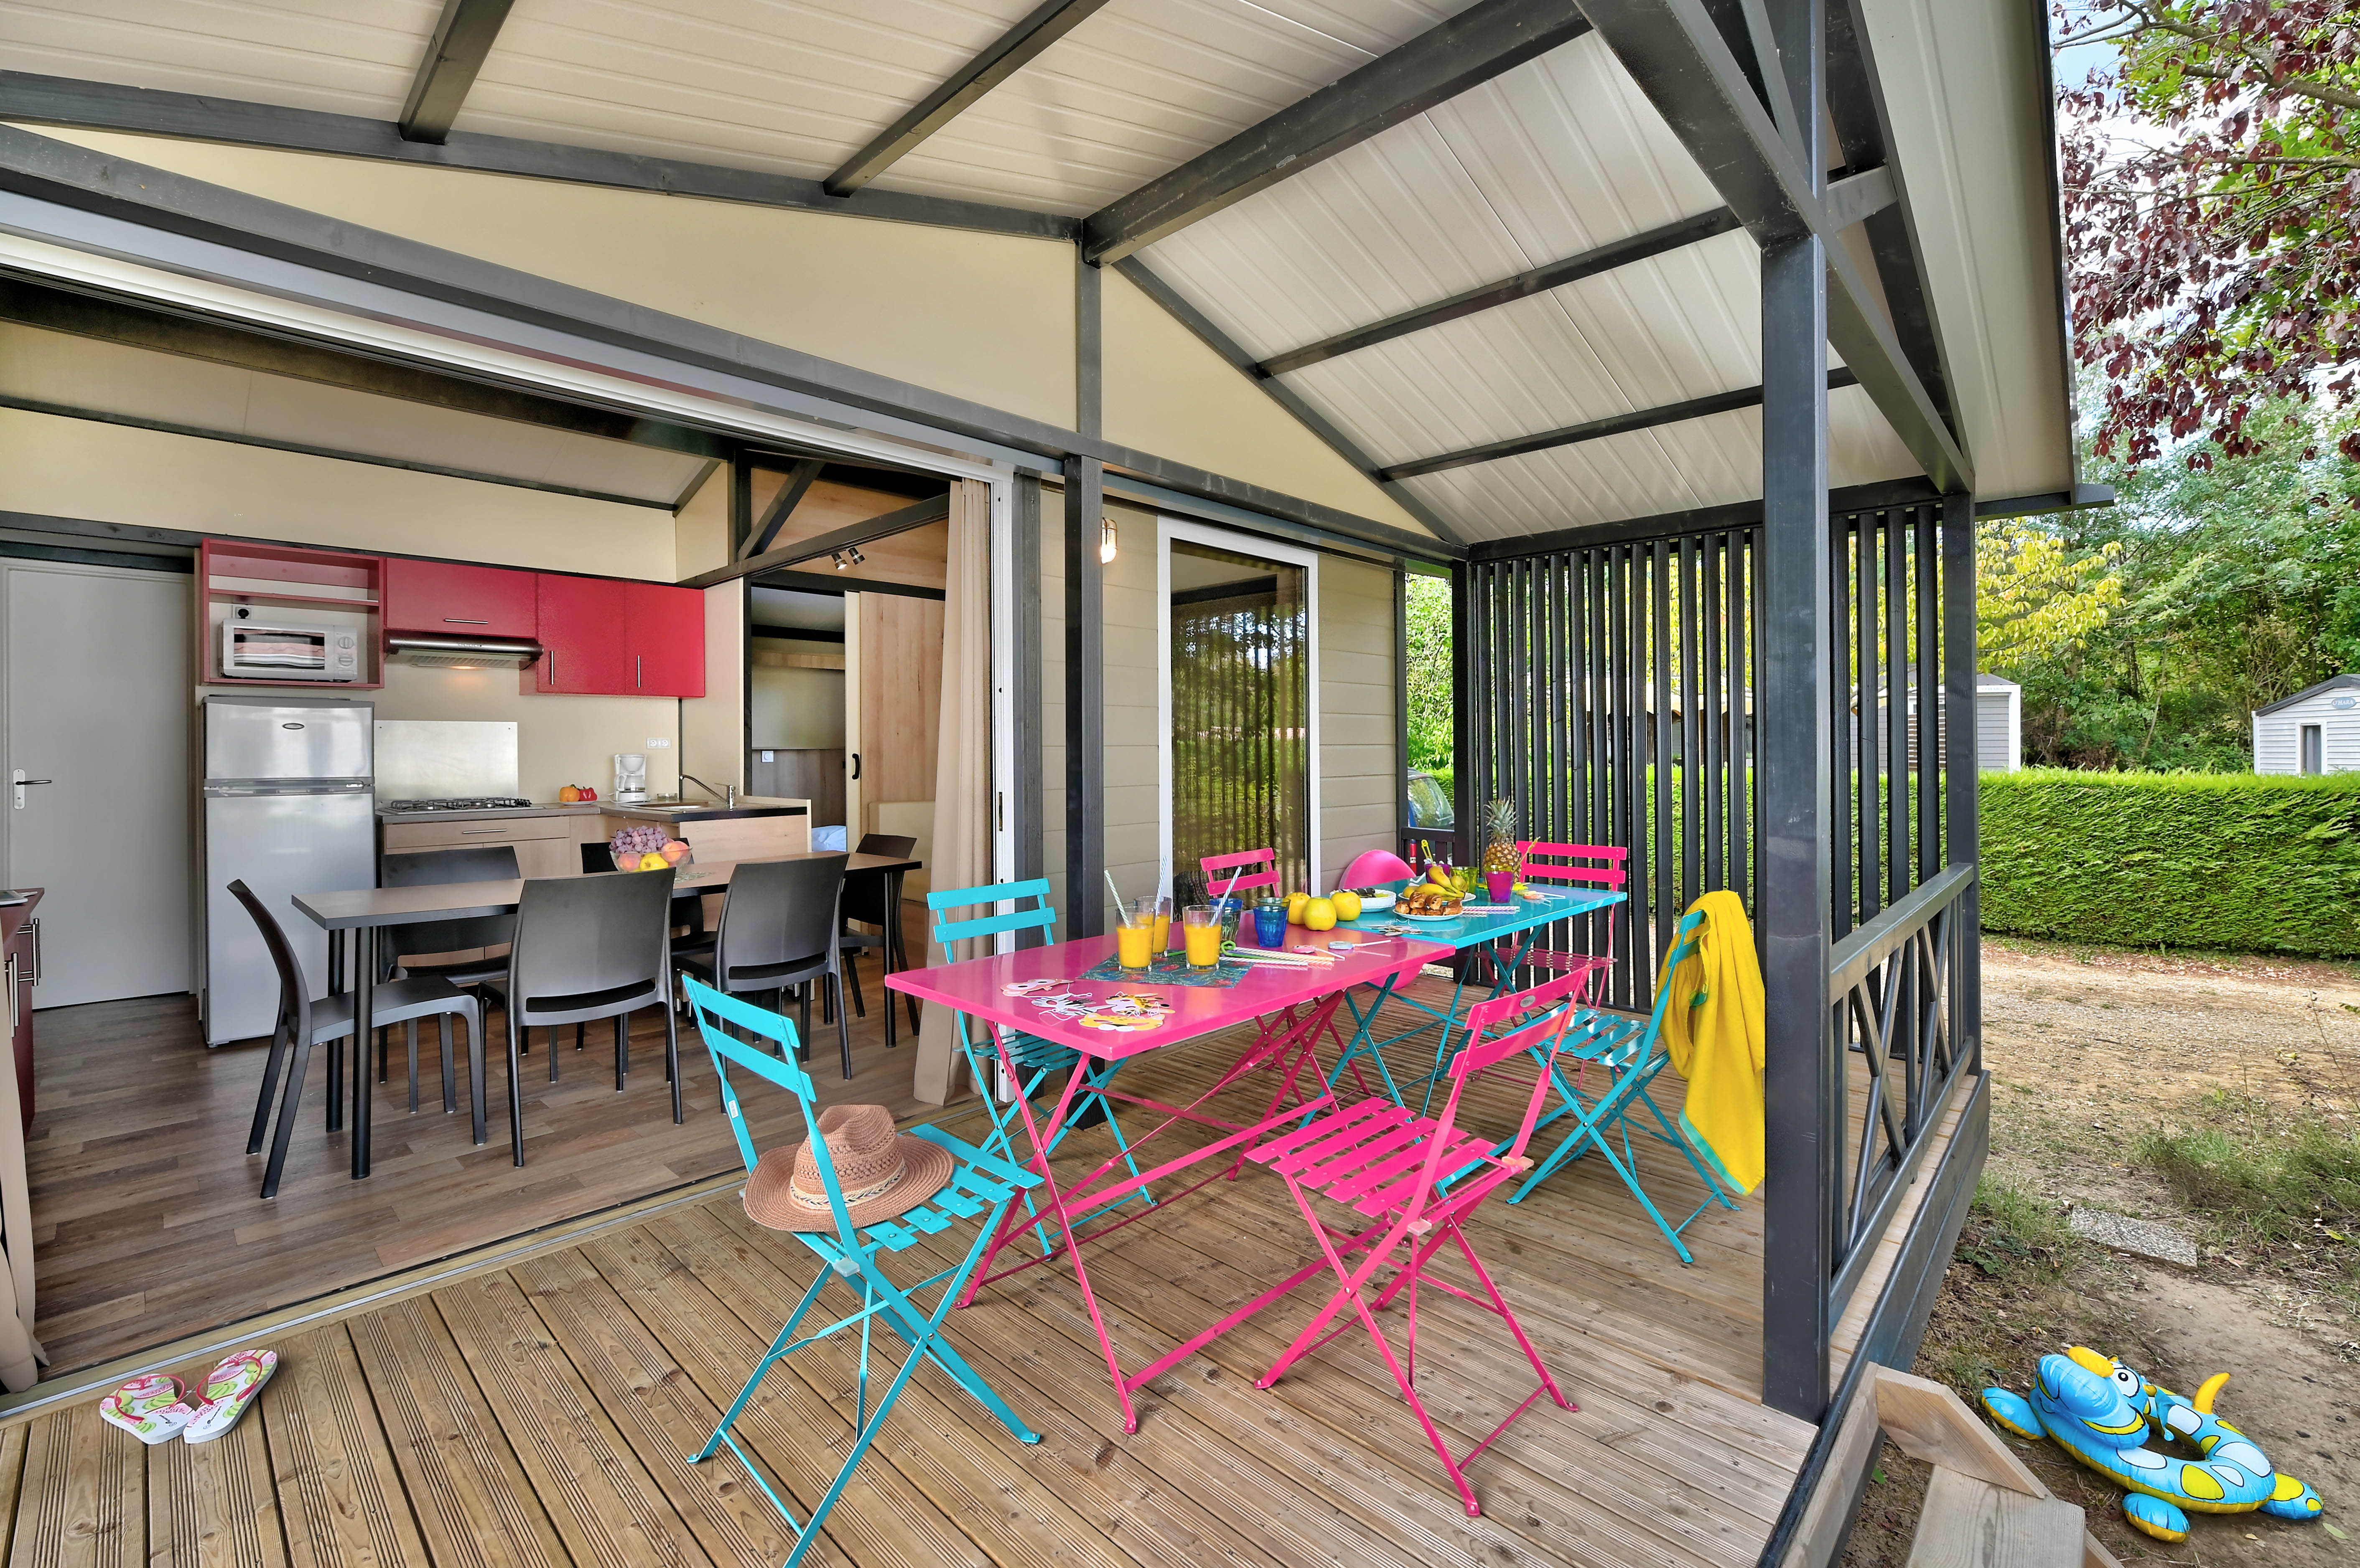 20_Chalet_6_Pers_WEB